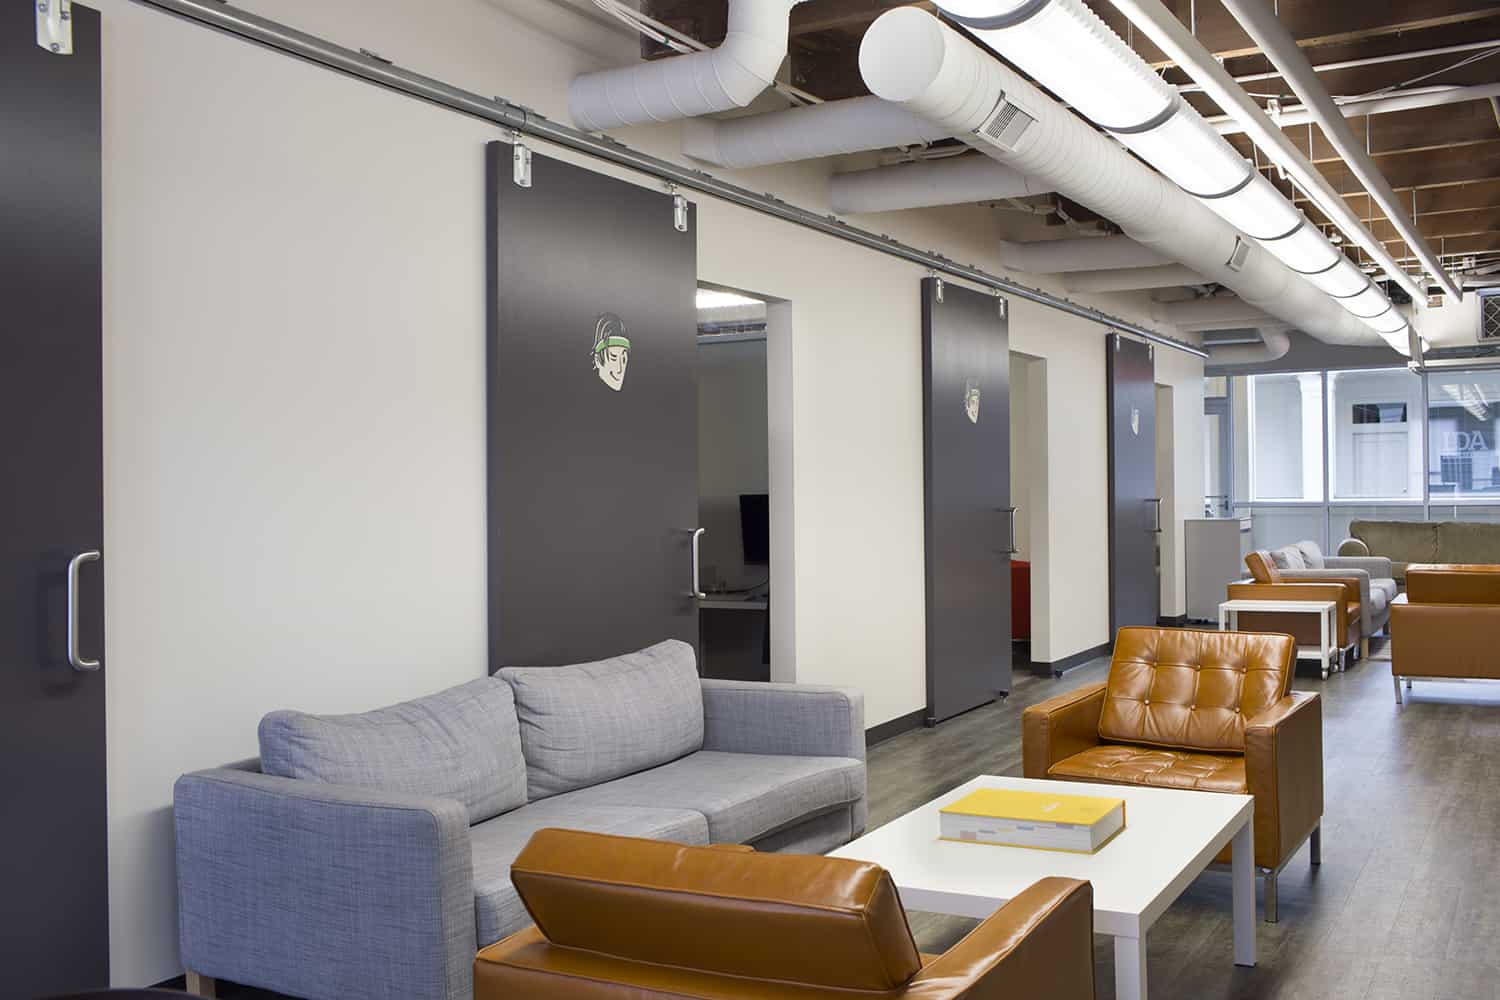 Bellhops-Chattanoga-Office-Space-Design-By-HK-Archiect